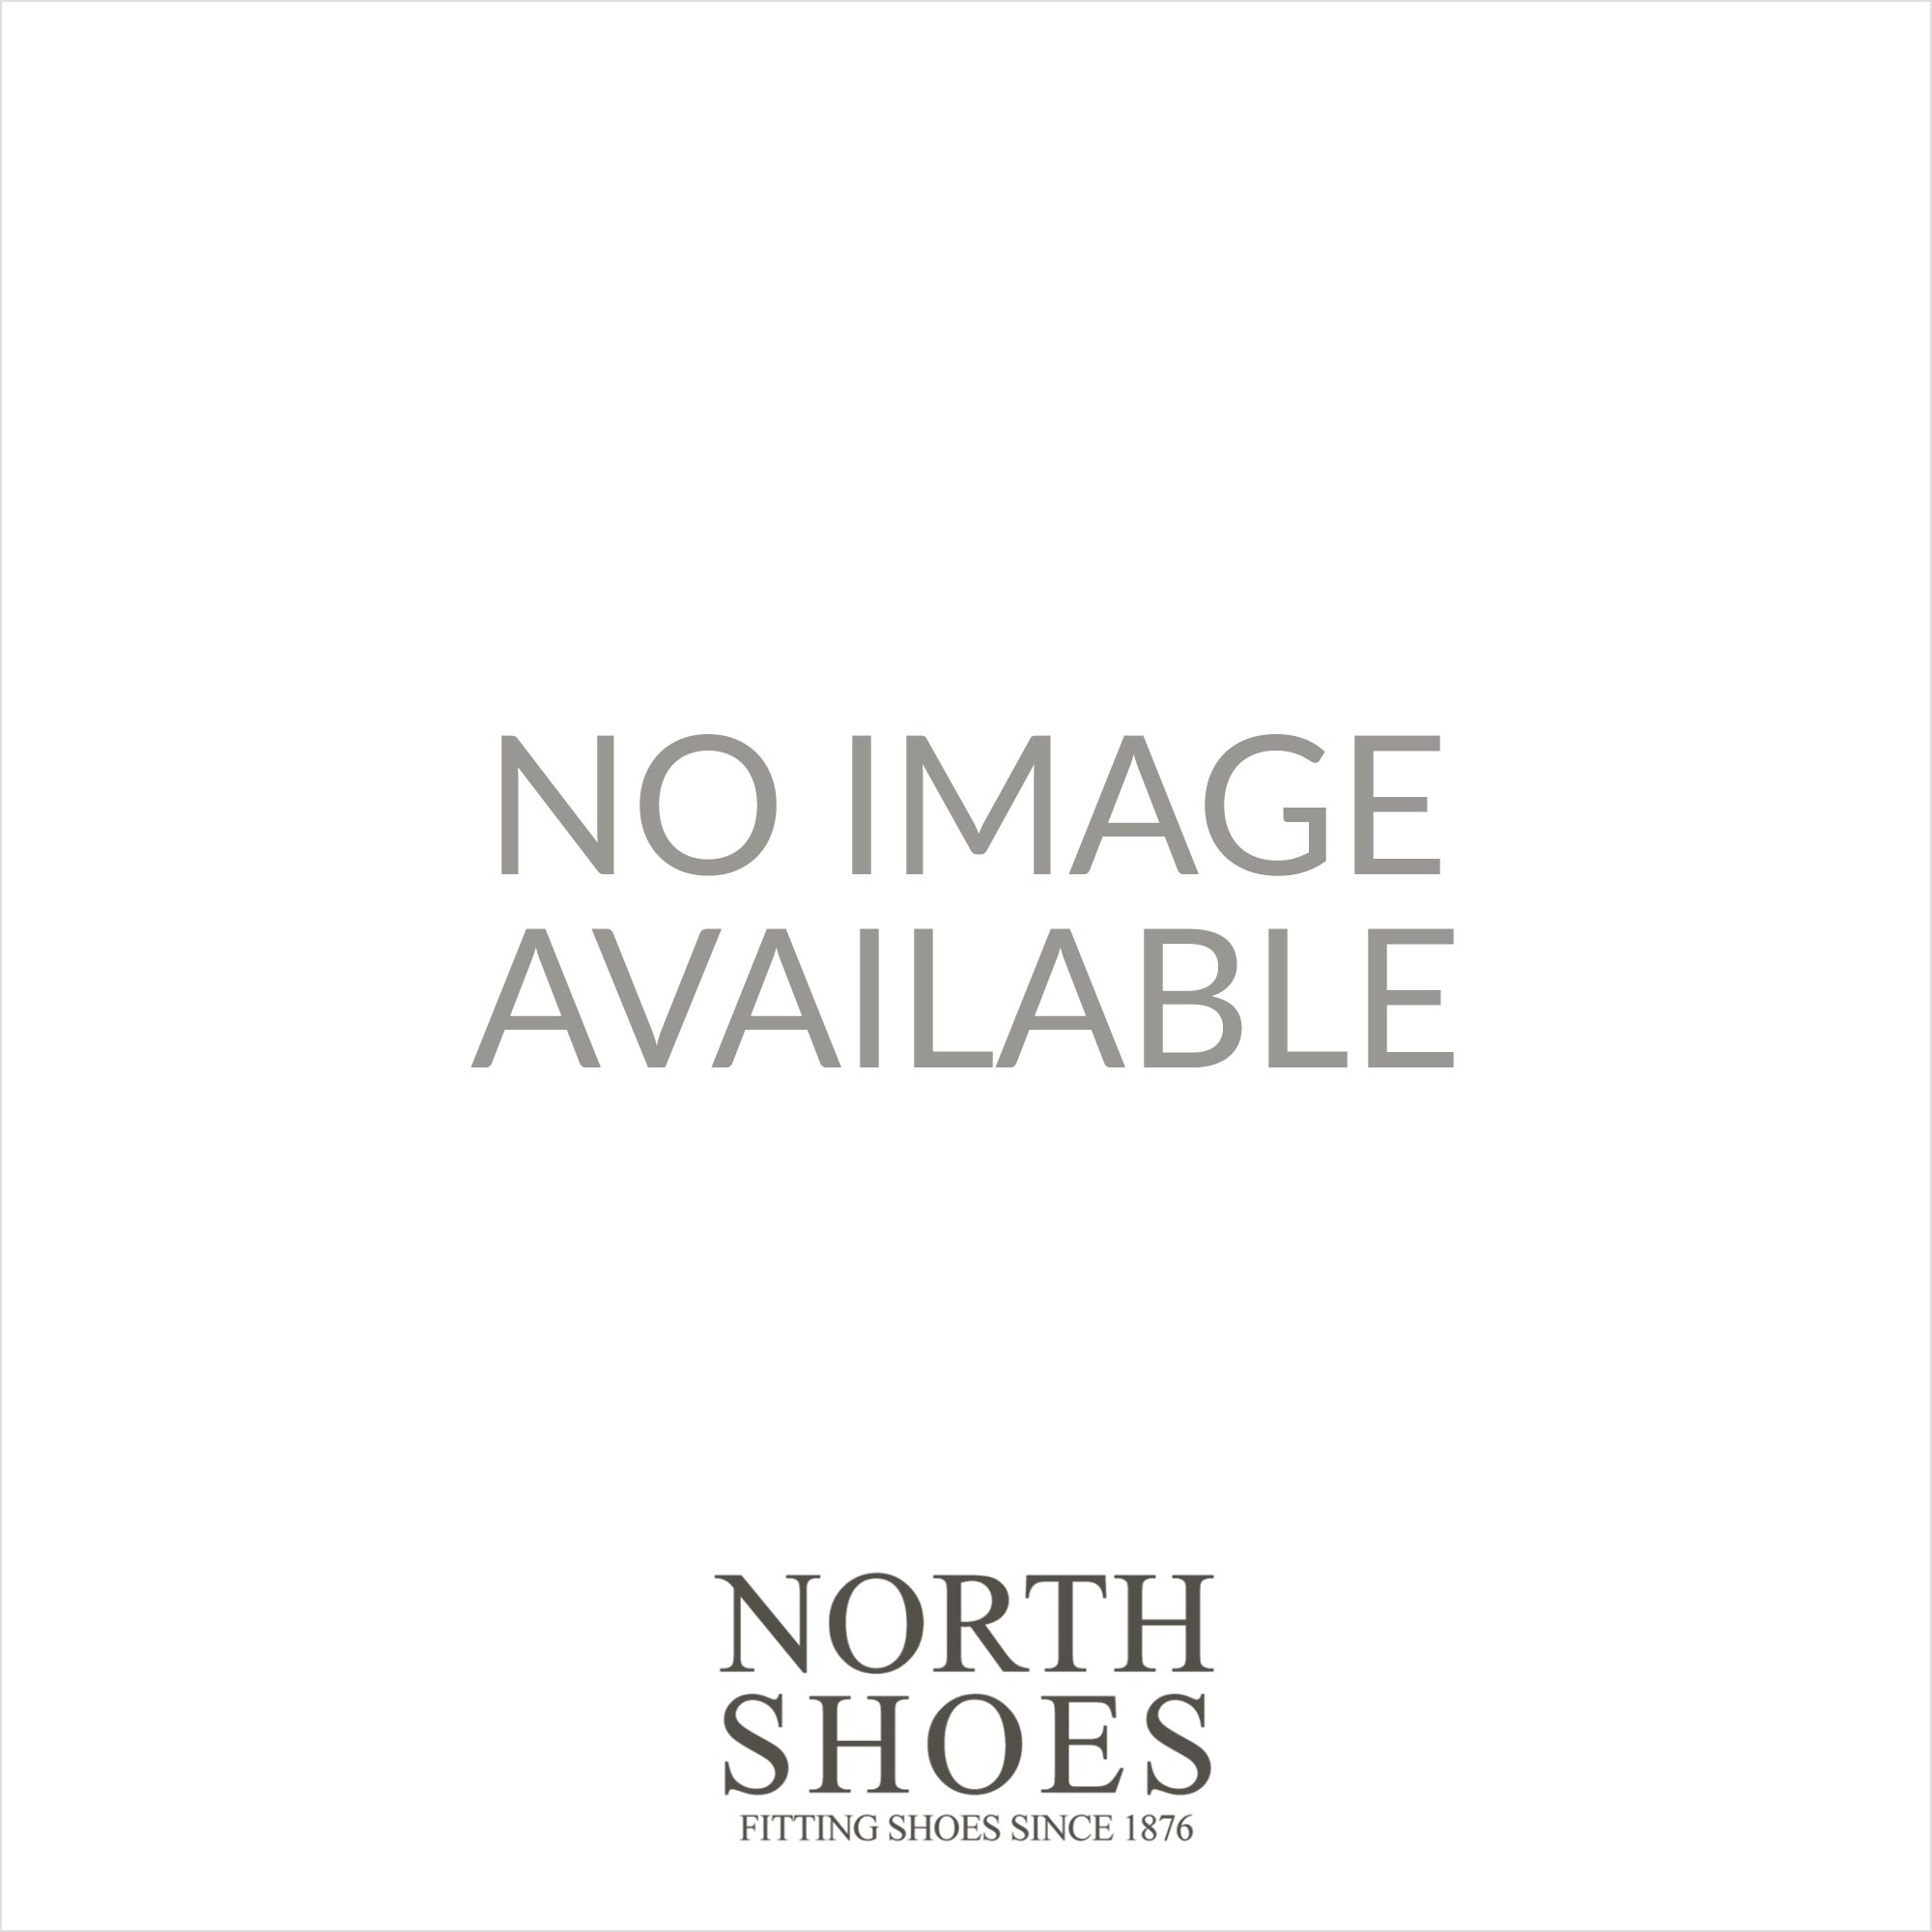 234f72bd5 Fitflop Halo Taupe Snake Textured Leather Womens Toe Post Sandals - UK 5